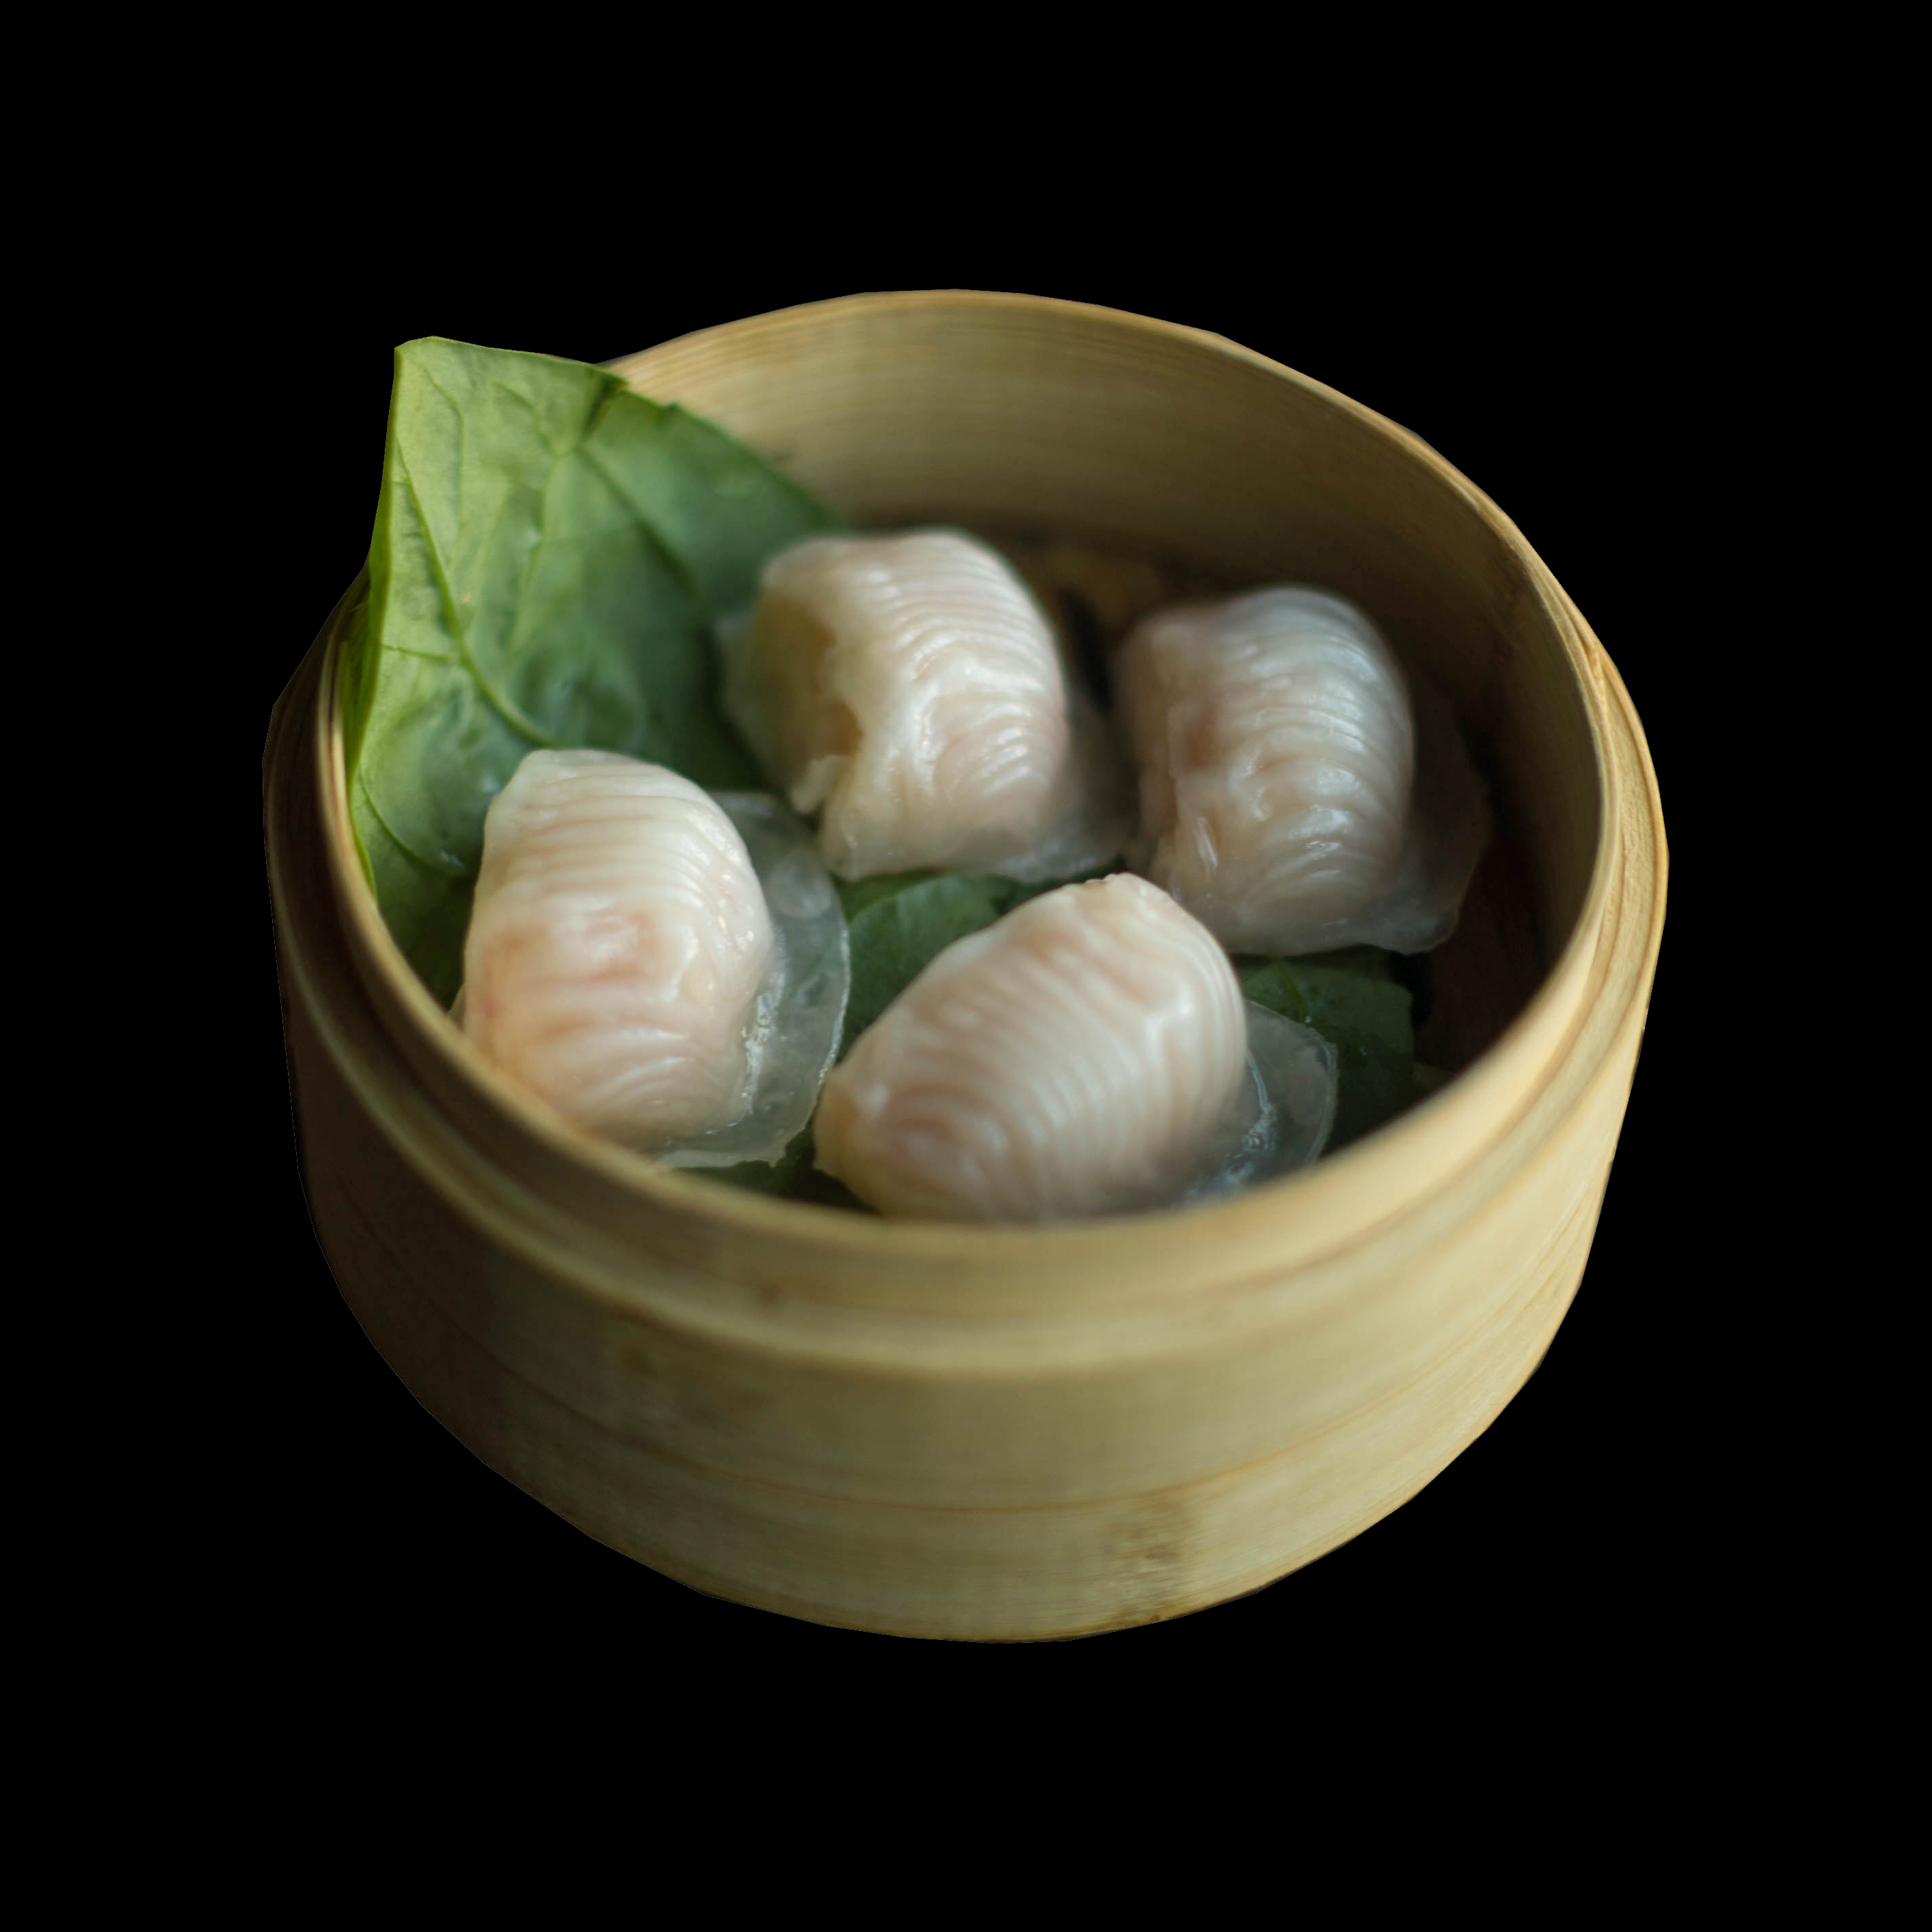 2. 虾饺 Shrimp Dumplings Image